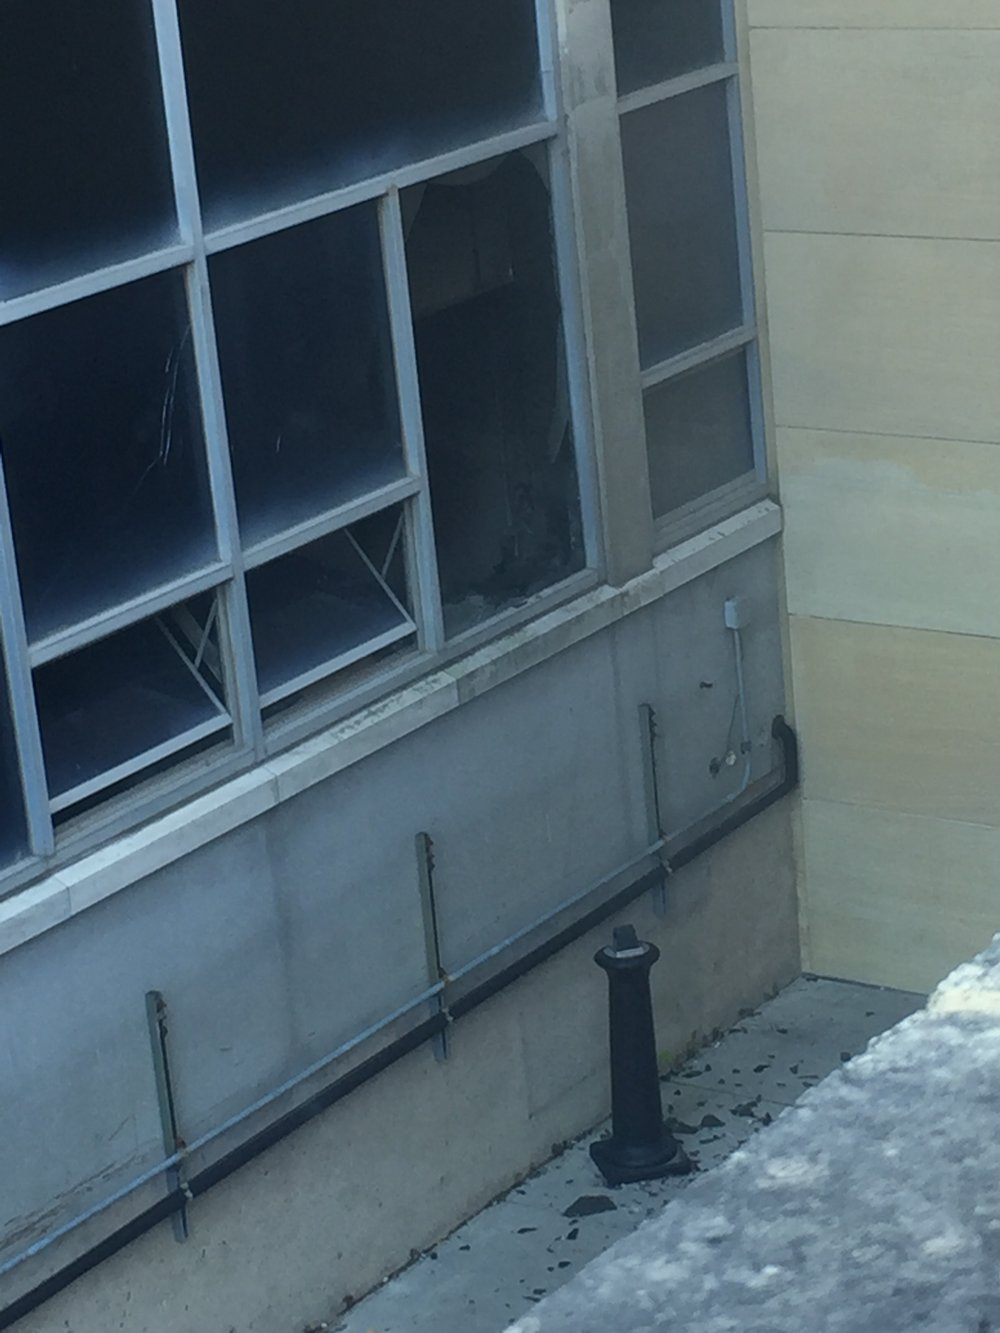 A broken window with smoke coming out at TLS building around 2:30 p.m. on Tuesday, Oct. 18, 2016. (Courtesy/Madie James)